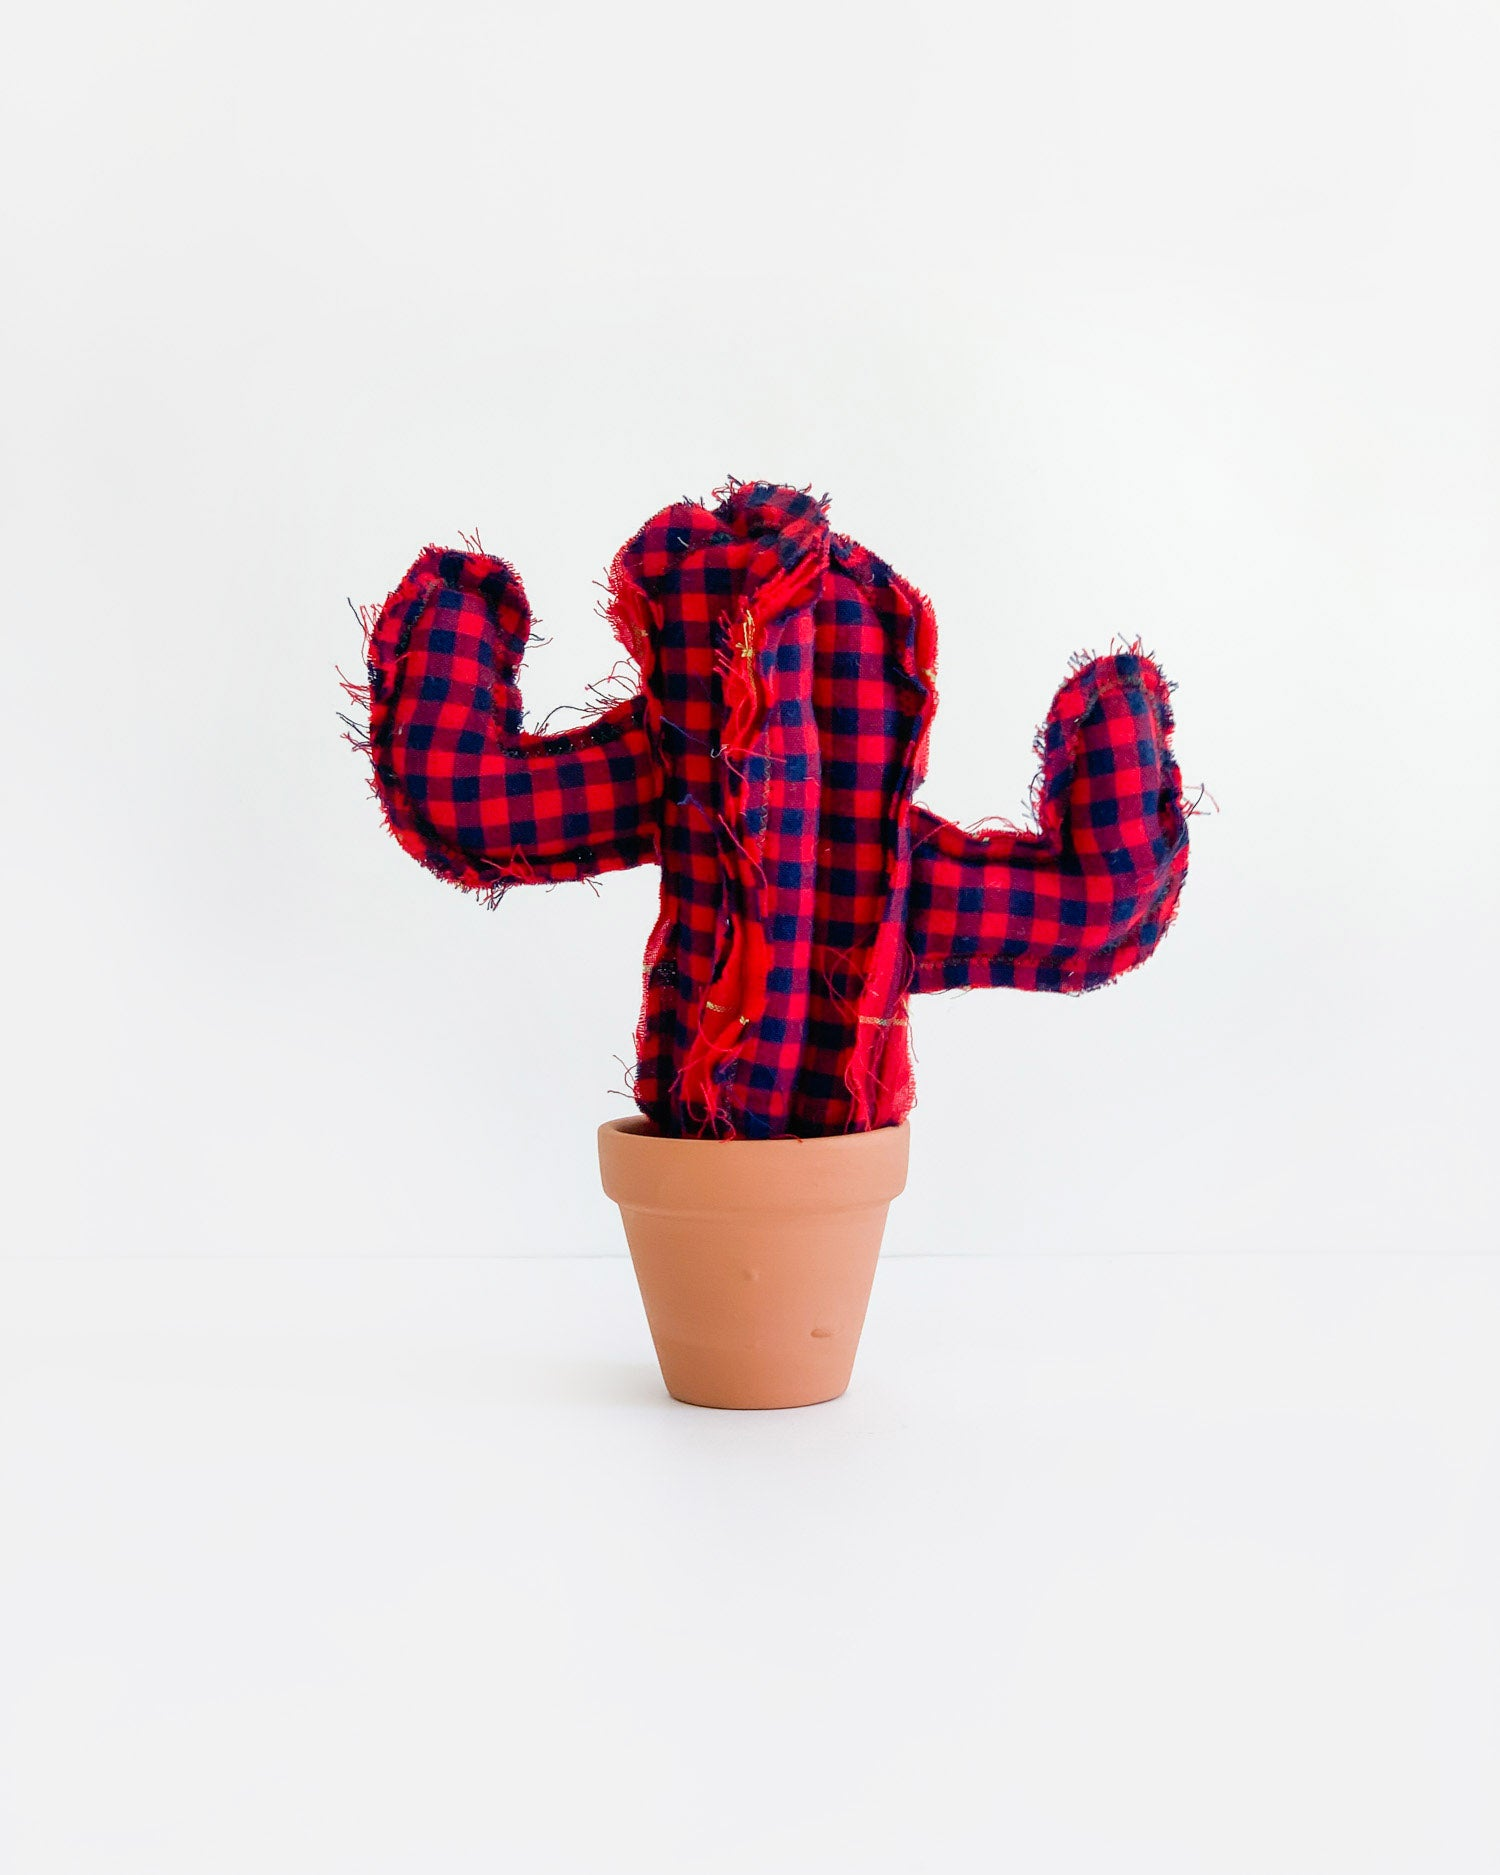 Mini Saguaro Cactus - Red Plaid (Sample)